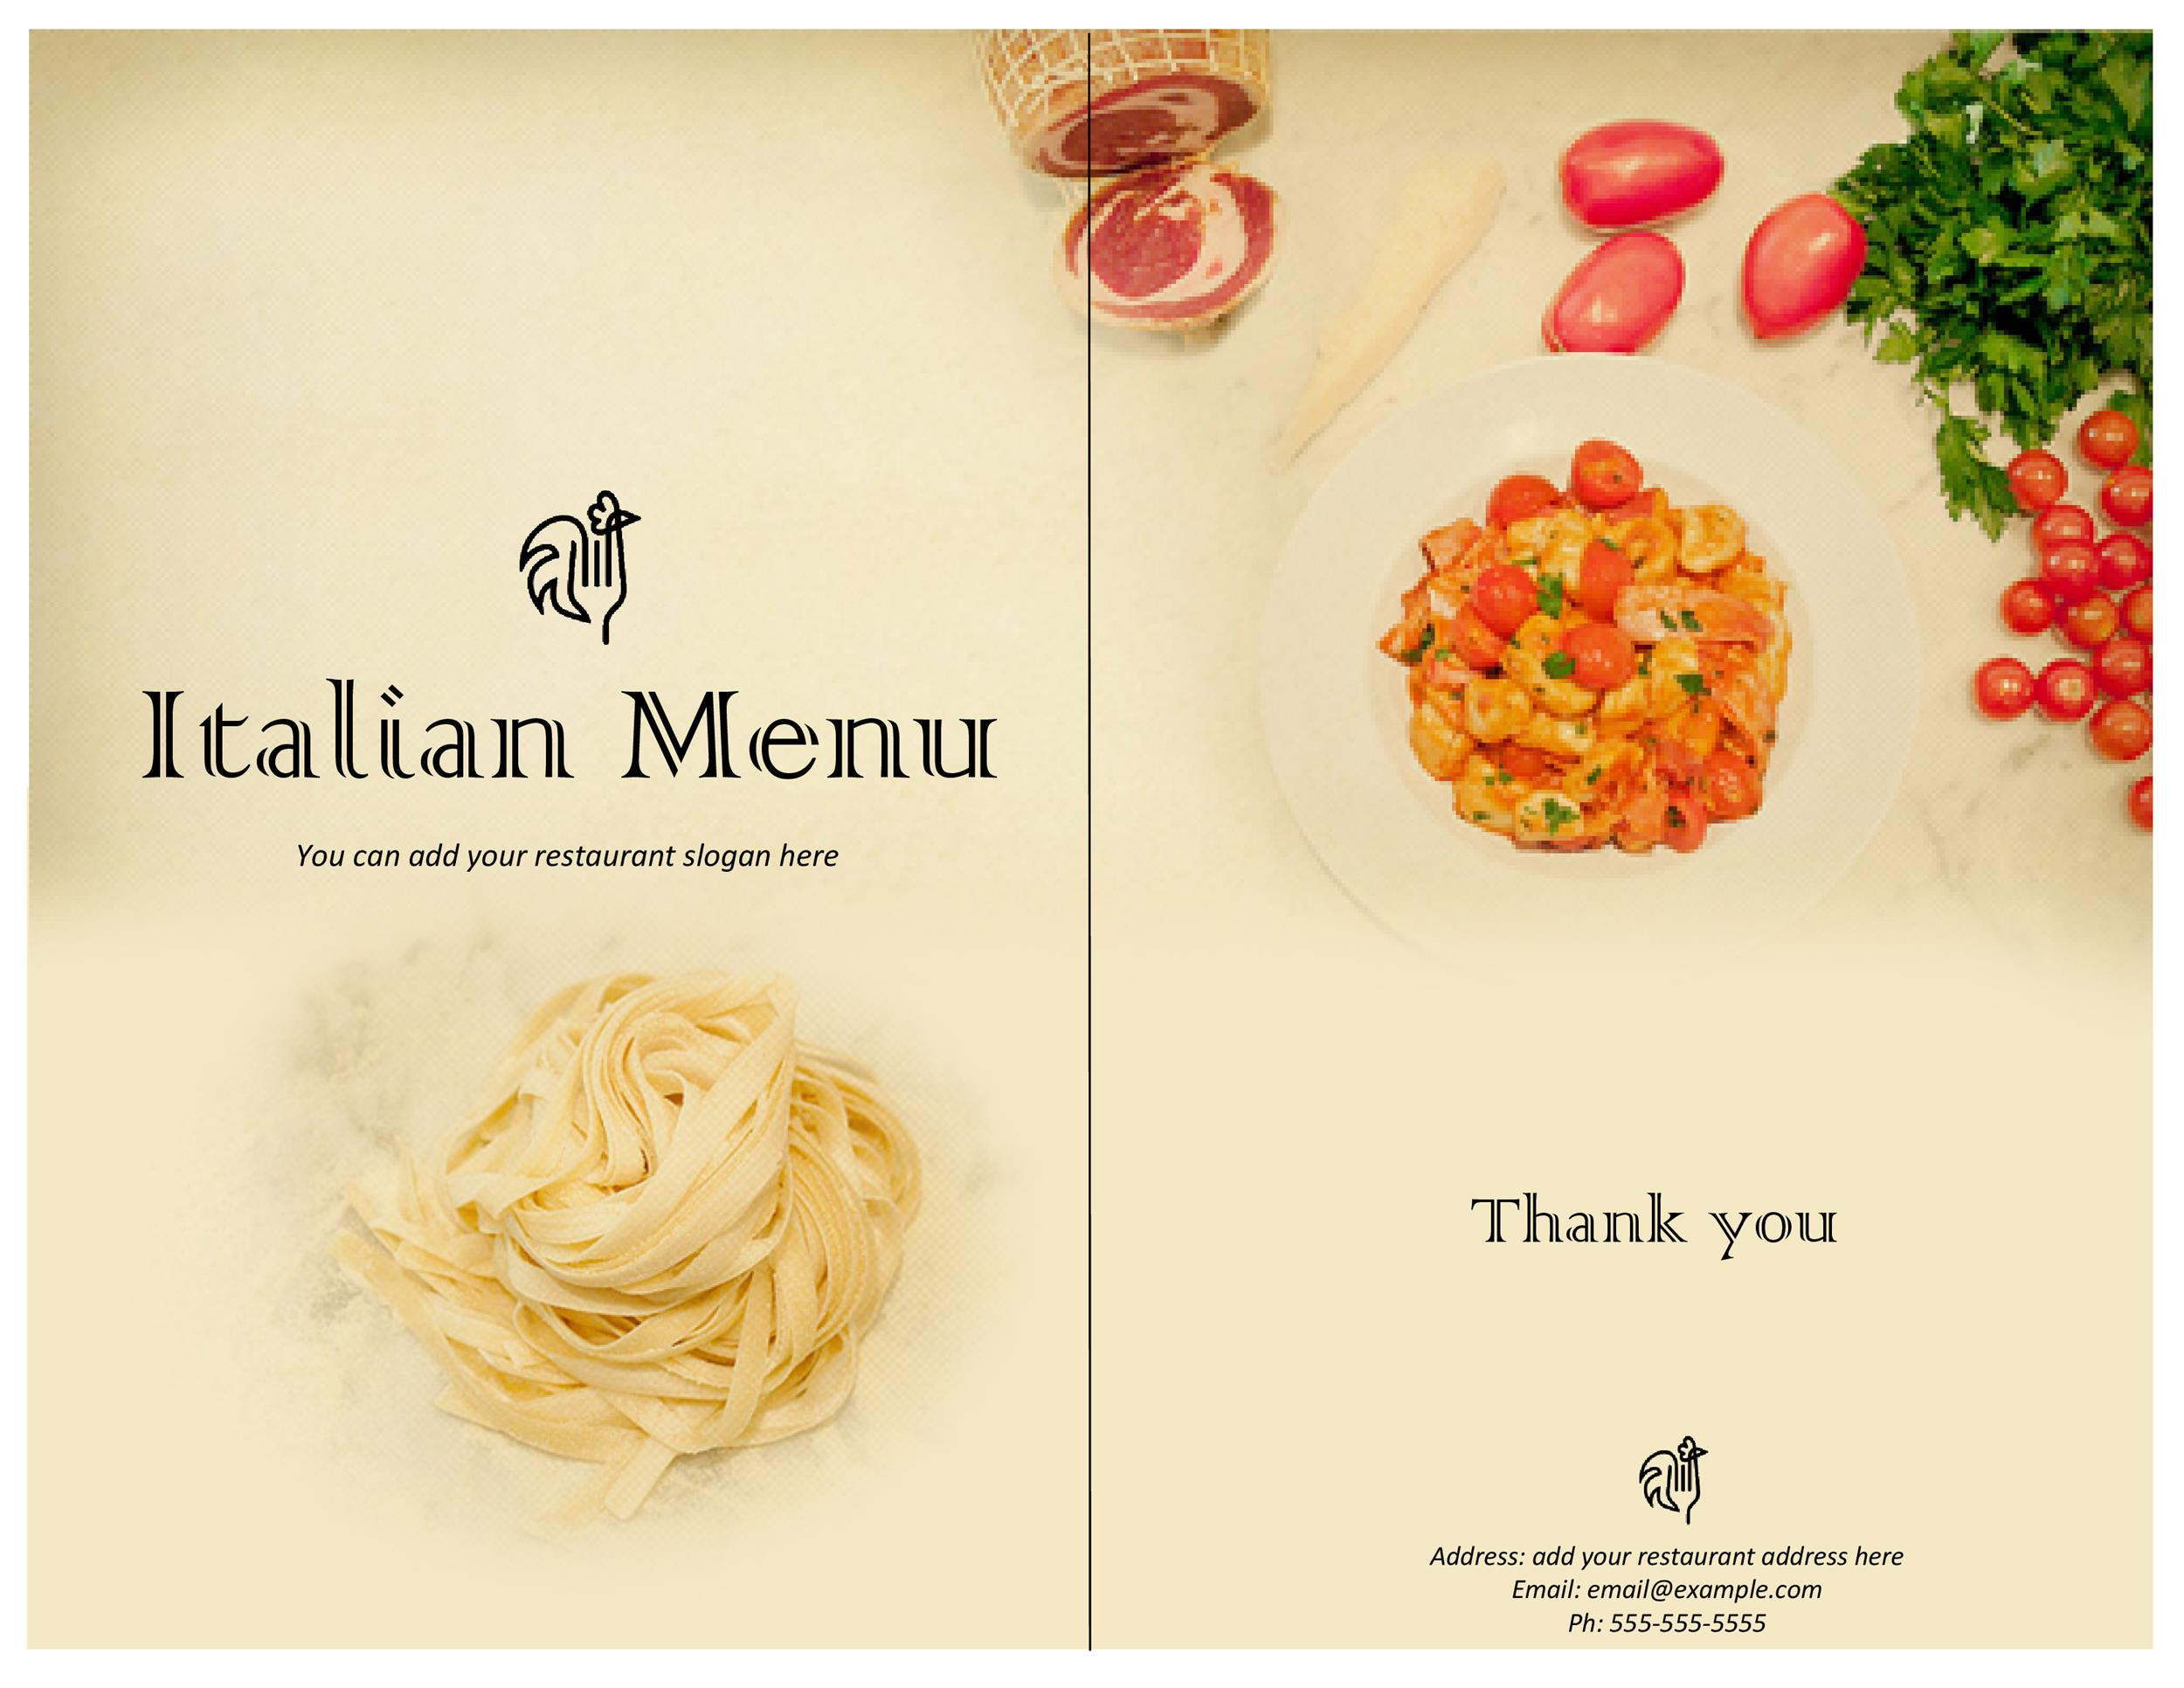 30 Restaurant Menu Templates & Designs - Template Lab